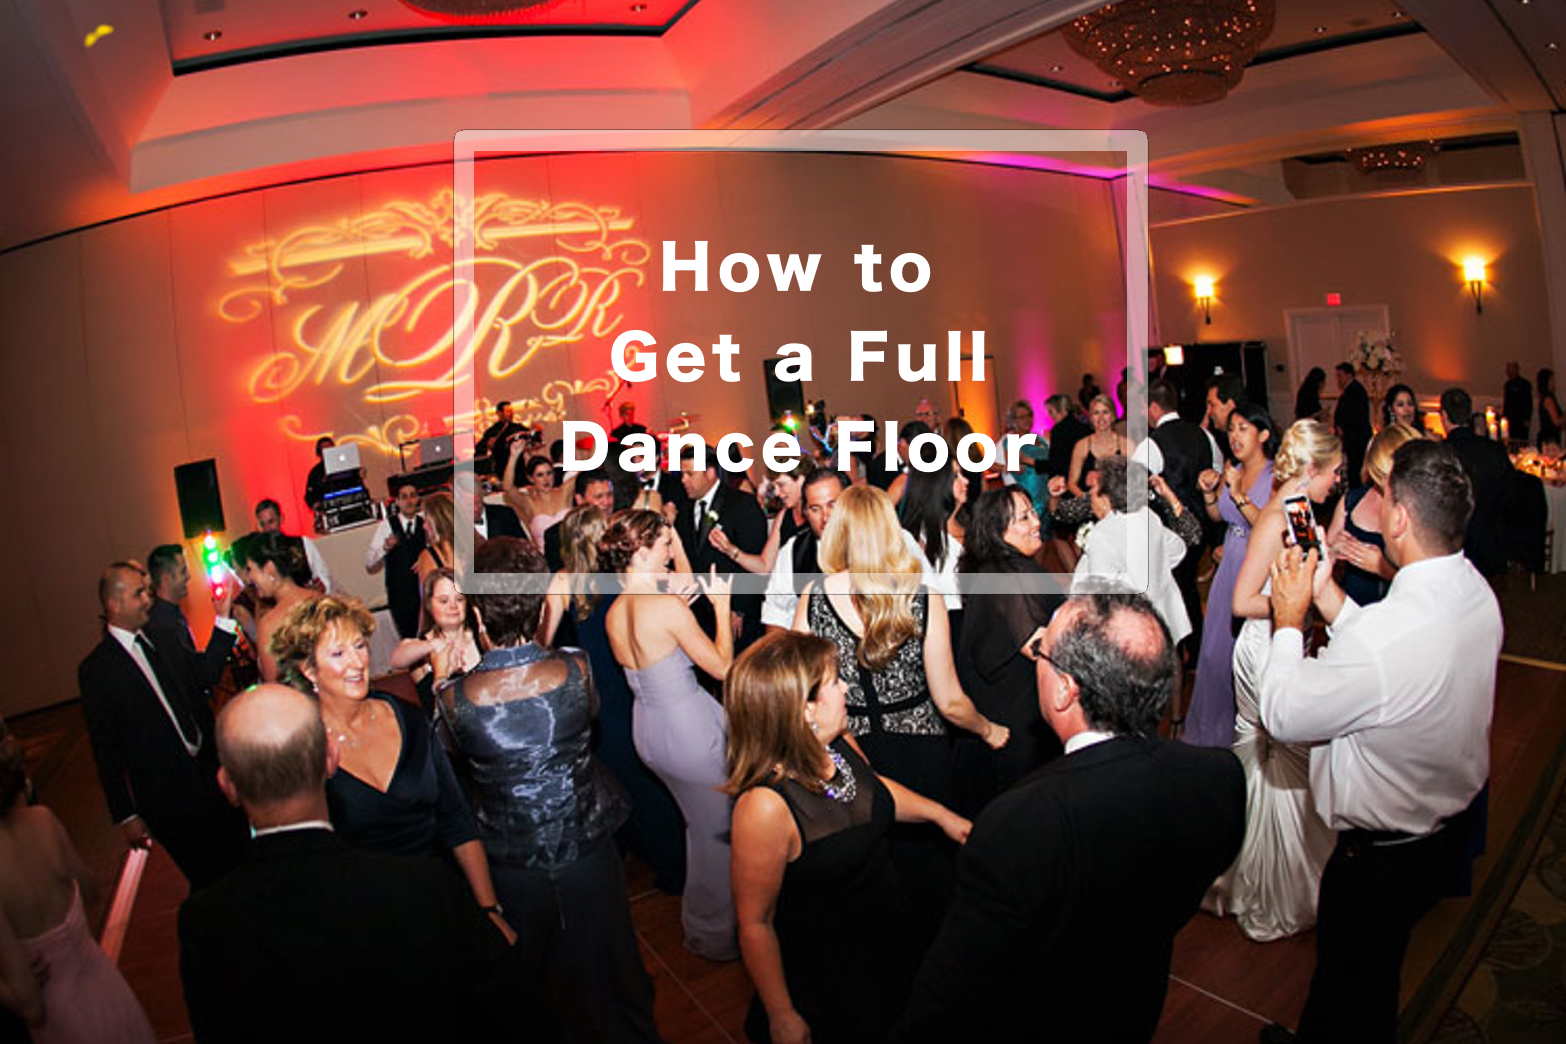 How To Dance At A Wedding.Wedding Tips How To Have A Full Dance Floor Dj Company